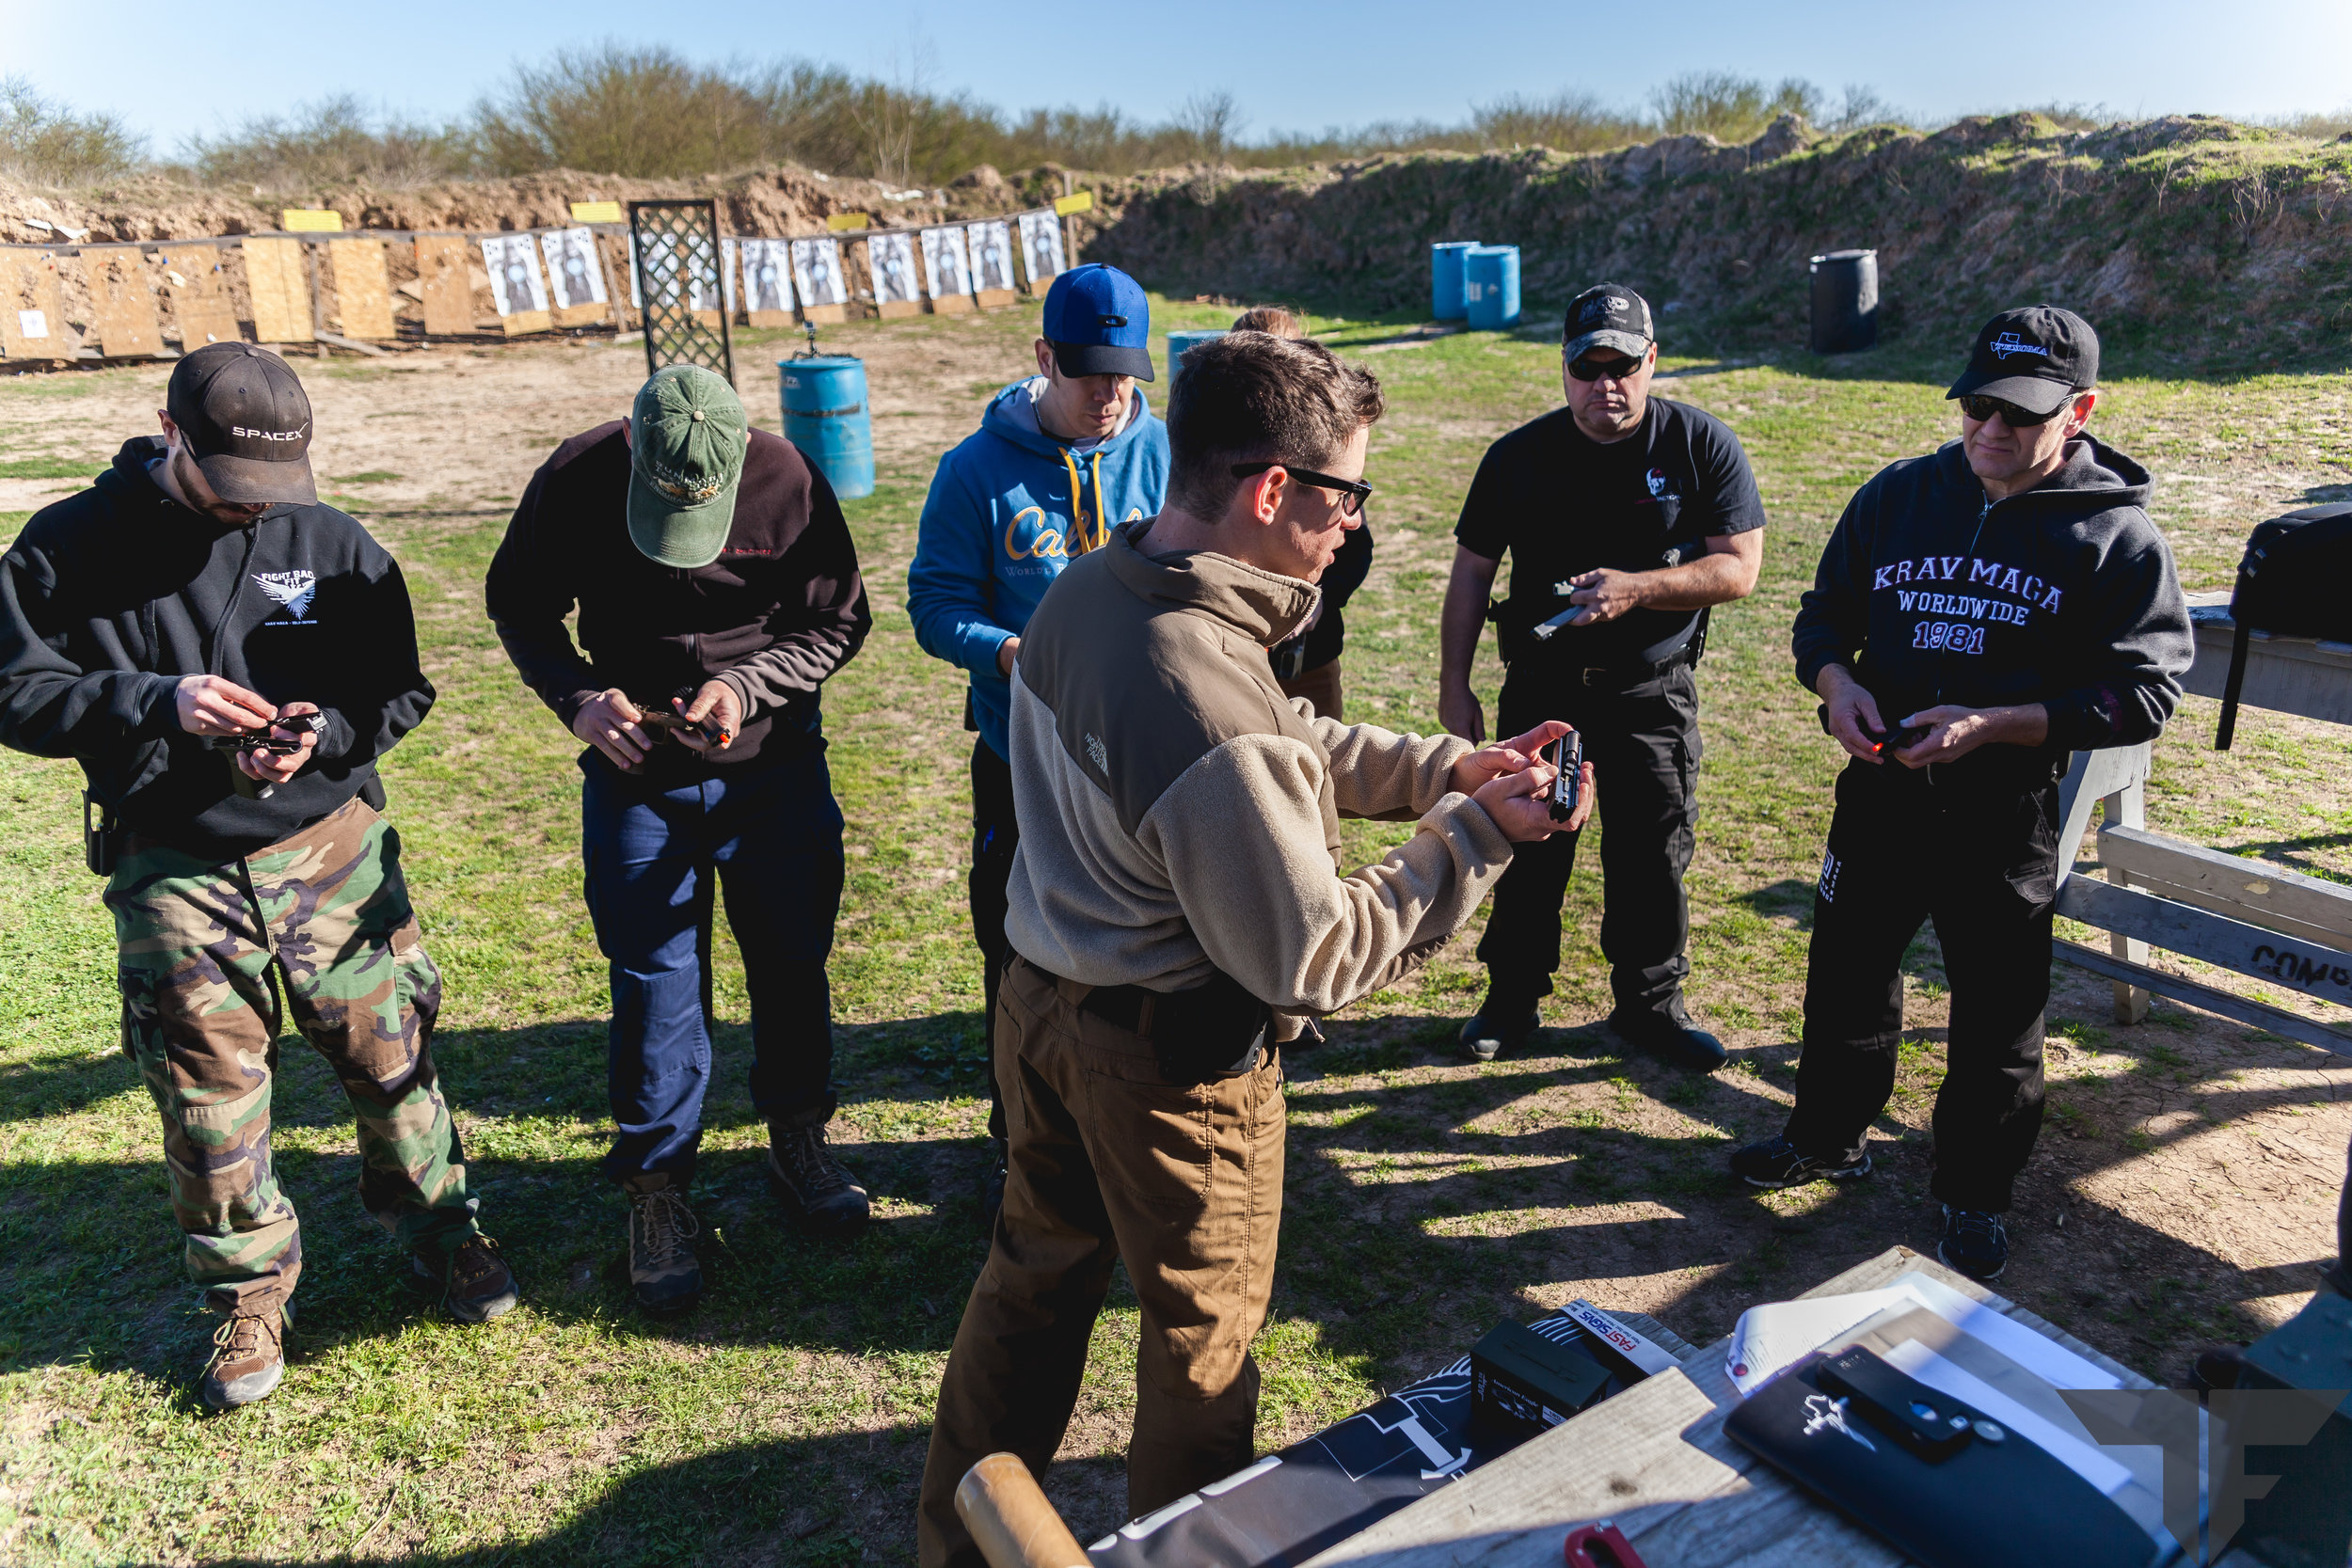 Not only learning how to fire the pistol but also how it operates mechanically.